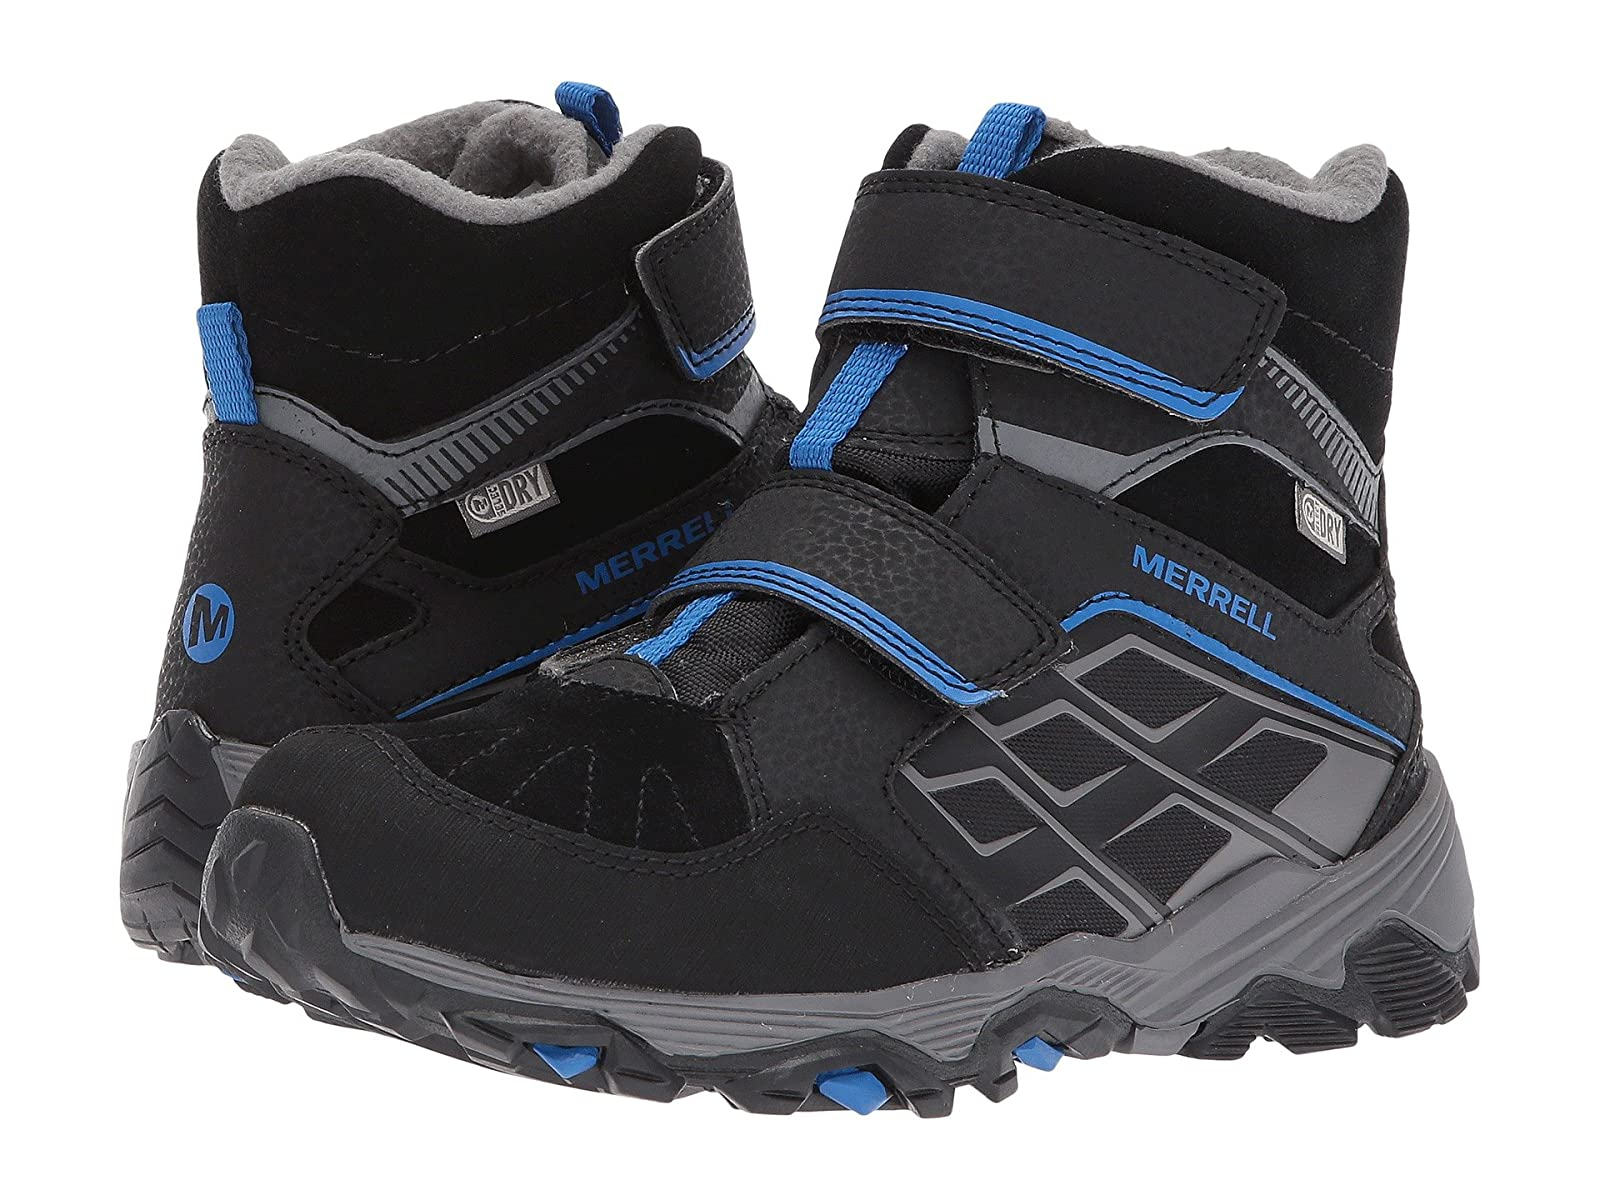 Merrell Kids Moab FST Polar Mid A/C Waterproof (Little Kid)Cheap and distinctive eye-catching shoes